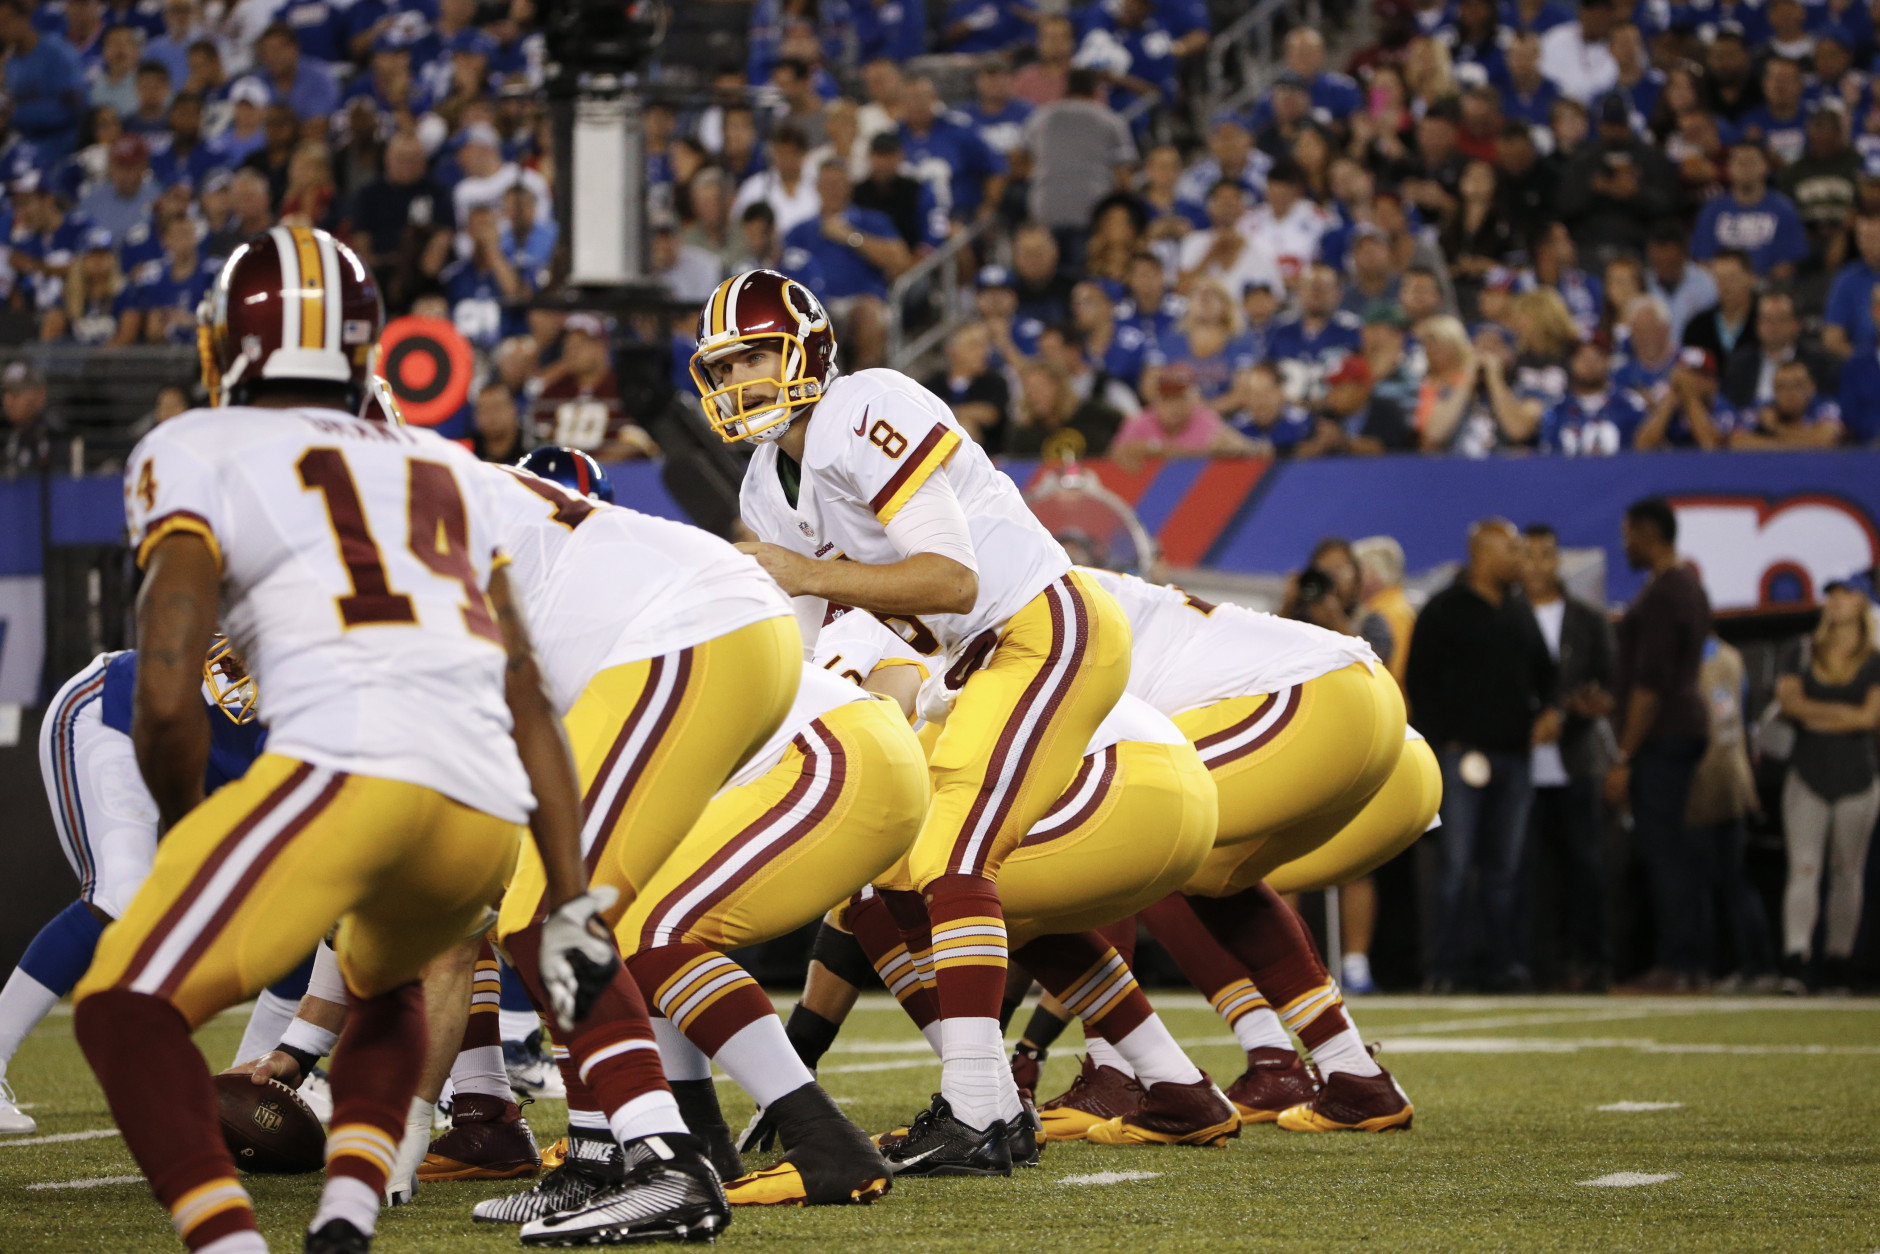 Washington Redskins quarterback Kirk Cousins (8) looks over his offensive line during the first half an NFL football game against the New York Giants Thursday Sept. 24, 2015, in East Rutherford, N.J. (AP Photo/Kathy Willens)